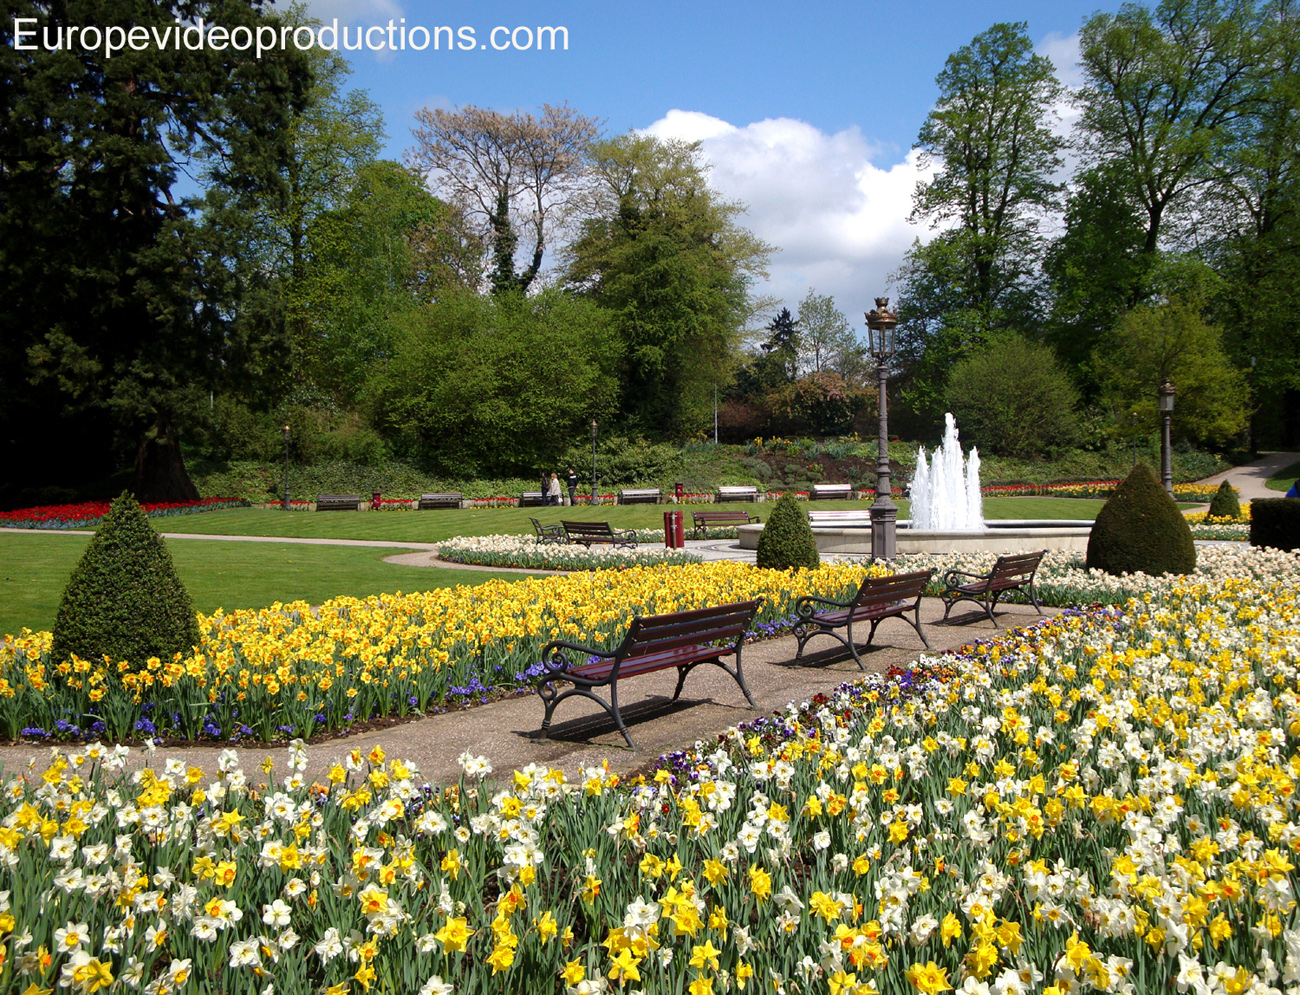 Flowers in spring in a park in Luxembourg City